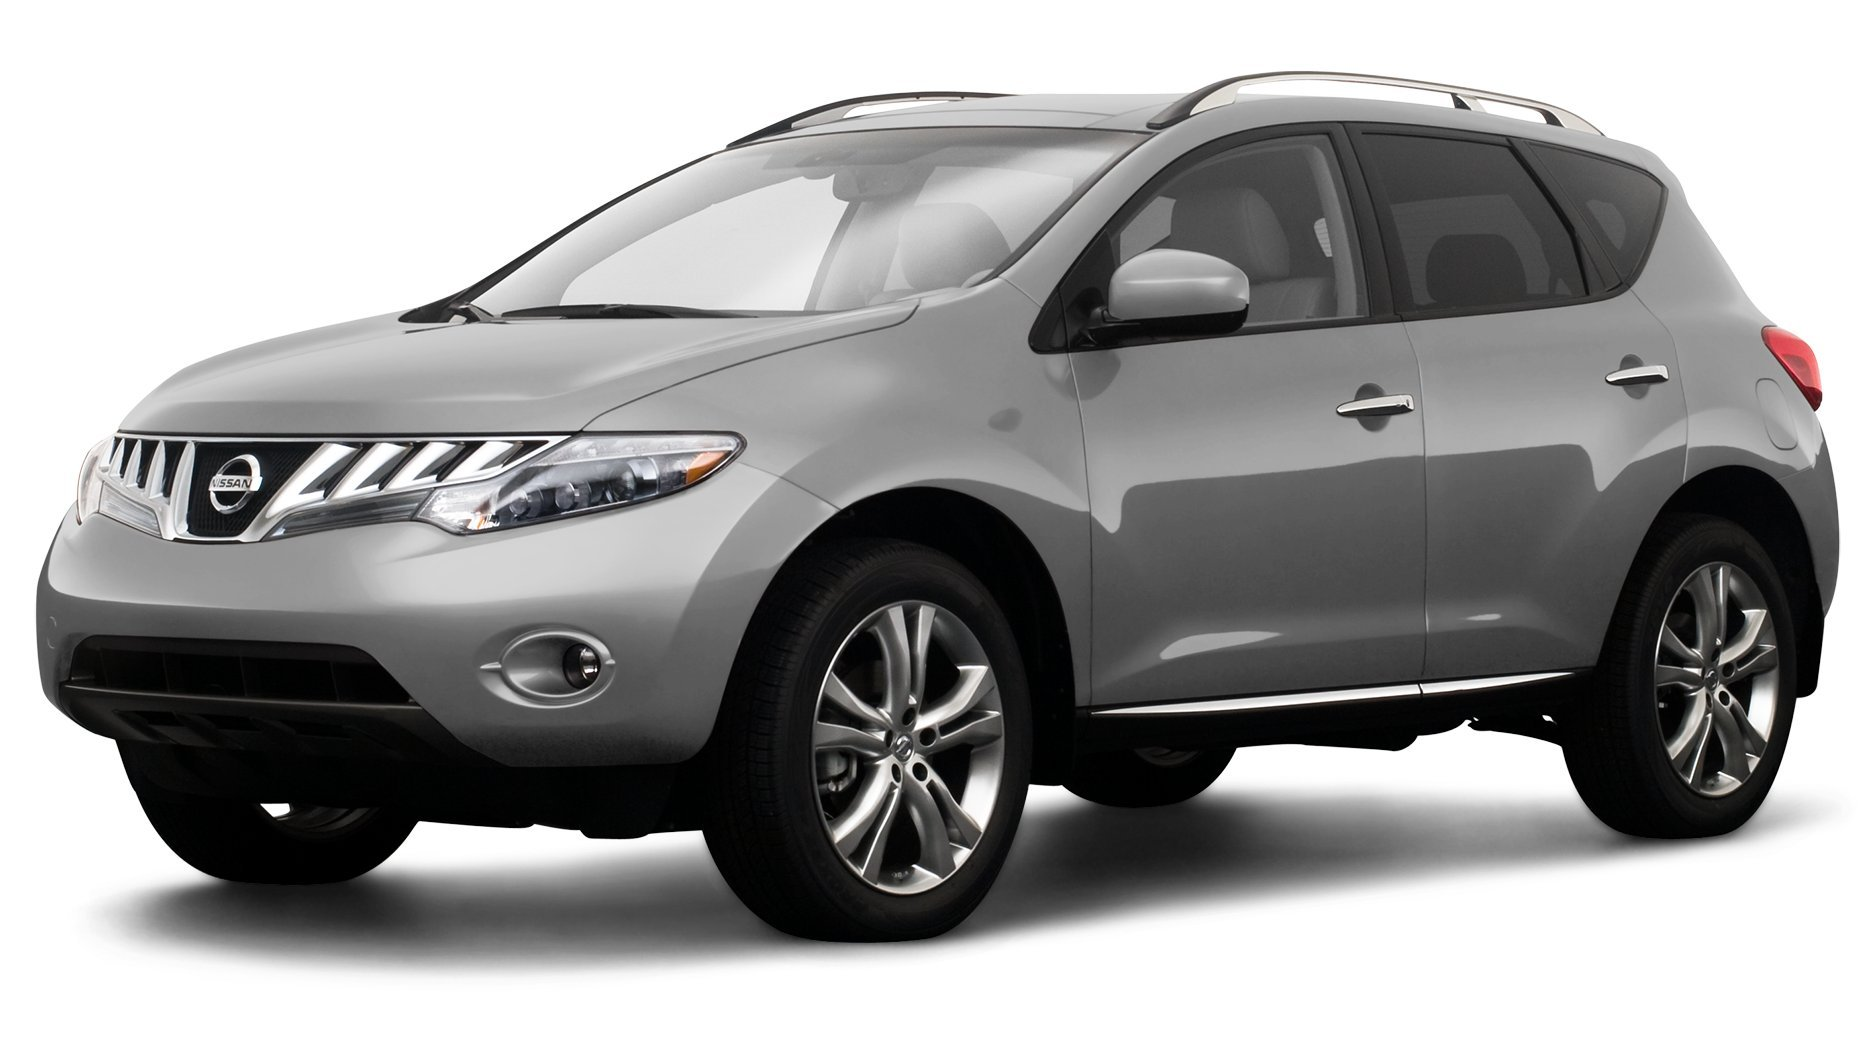 Amazon 2009 nissan murano reviews images and specs vehicles 2009 nissan murano le all wheel drive 4 door vanachro Image collections